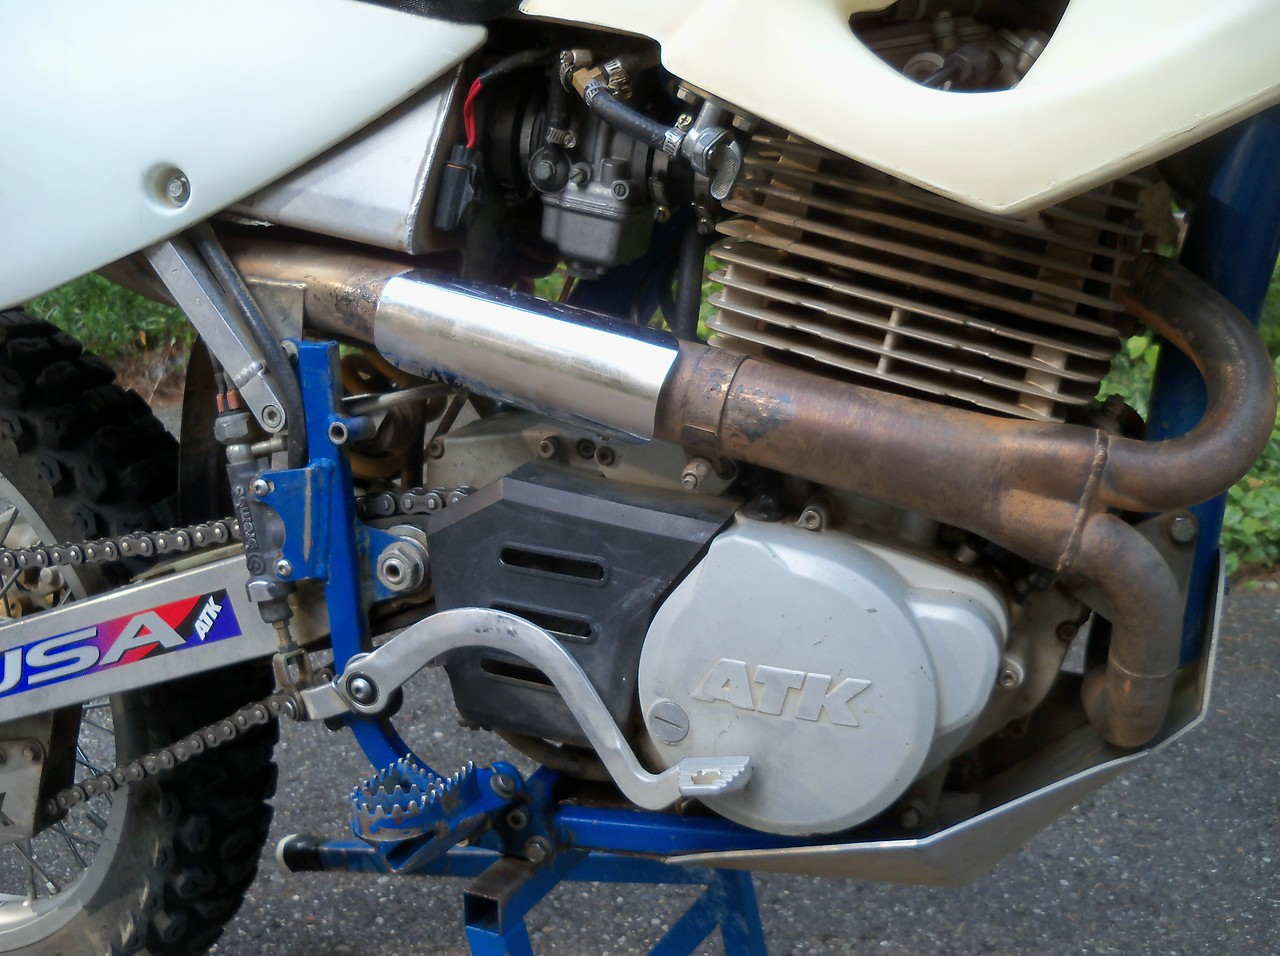 Rejetted from a lean 182 main to a 188 main which runs much cooler.. Race bikes use a 190...